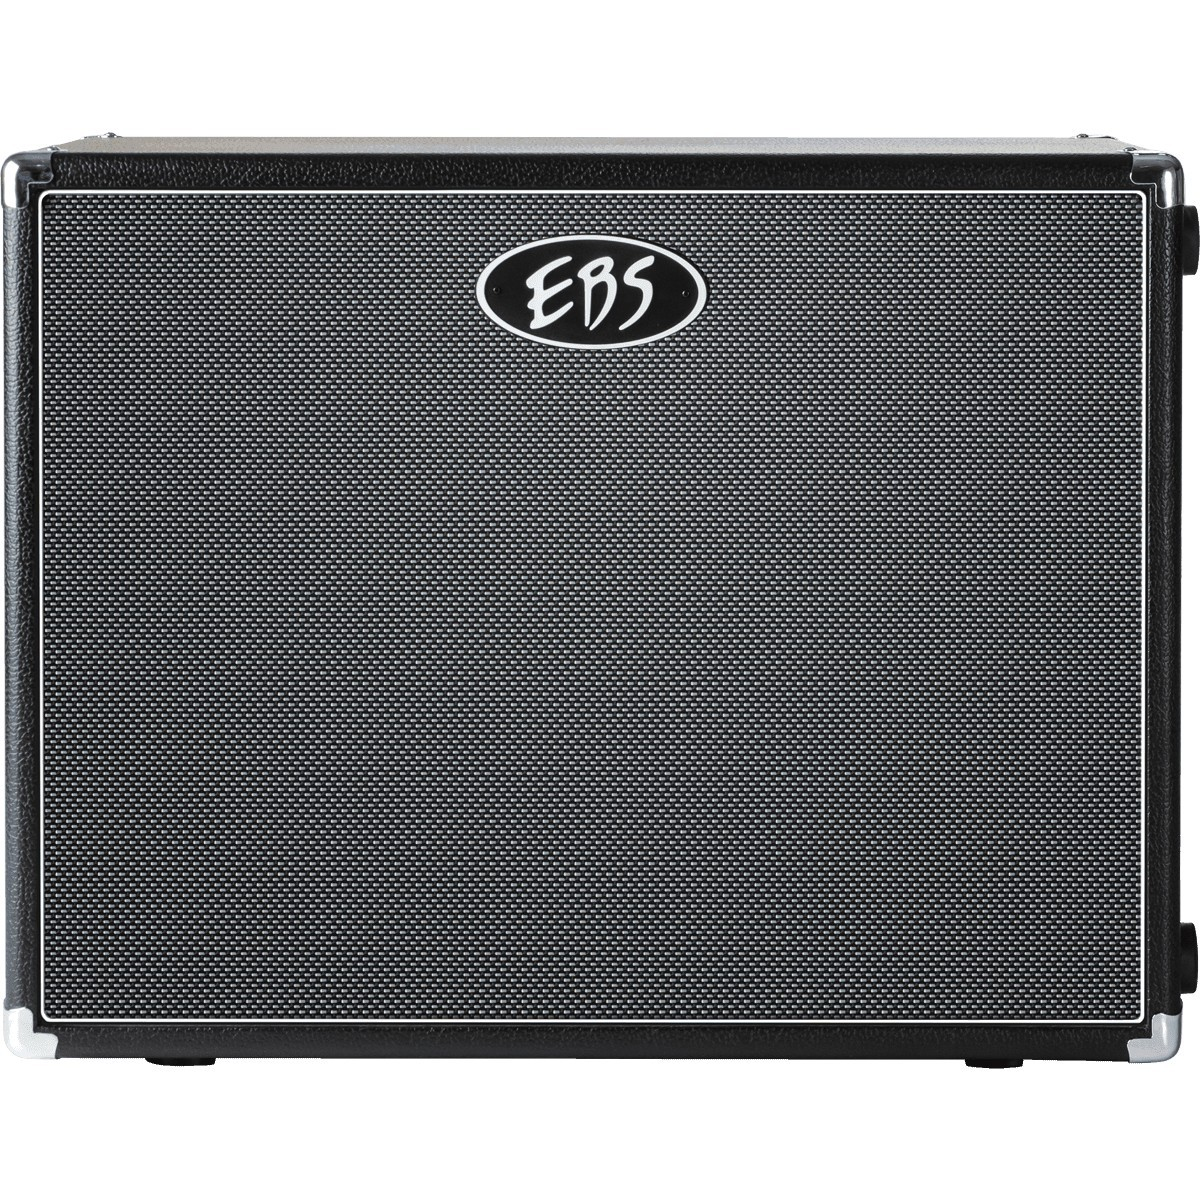 EBS ClassicLine 210 Mid Size